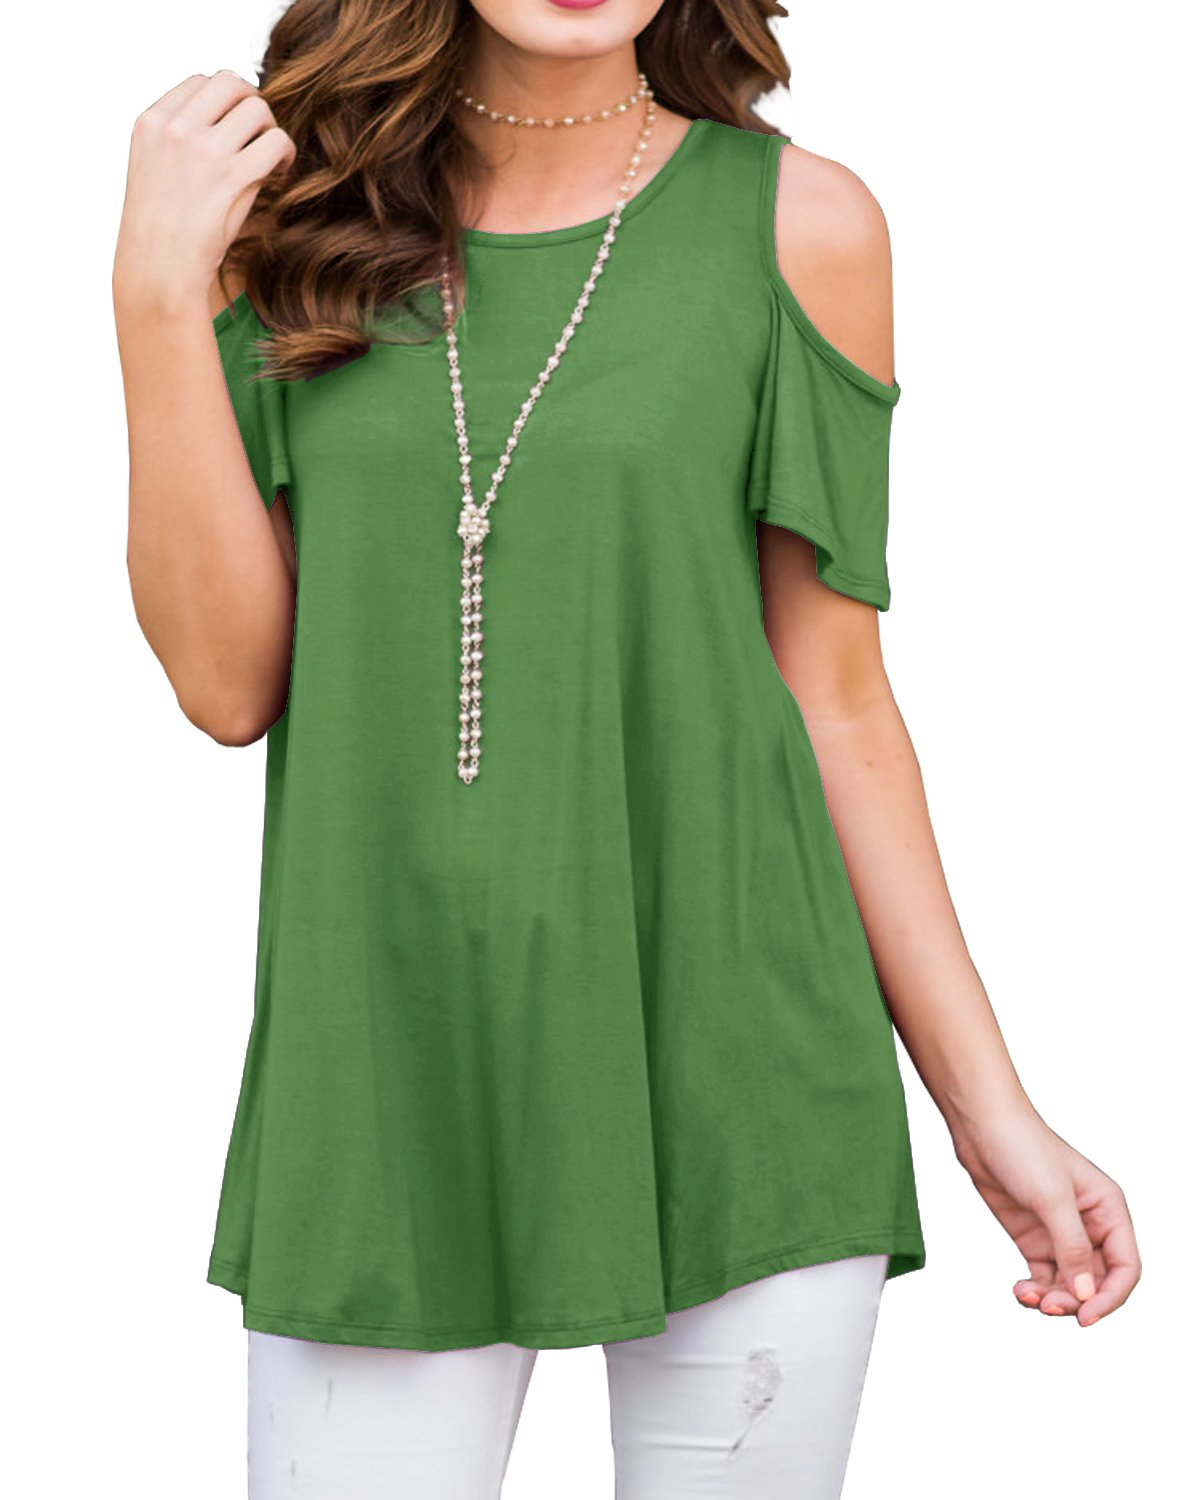 PrinStory Womens Short Sleeve Off Shoulder Round Neck Casual Loose Top Blouse T-Shirt Grass Green-XL